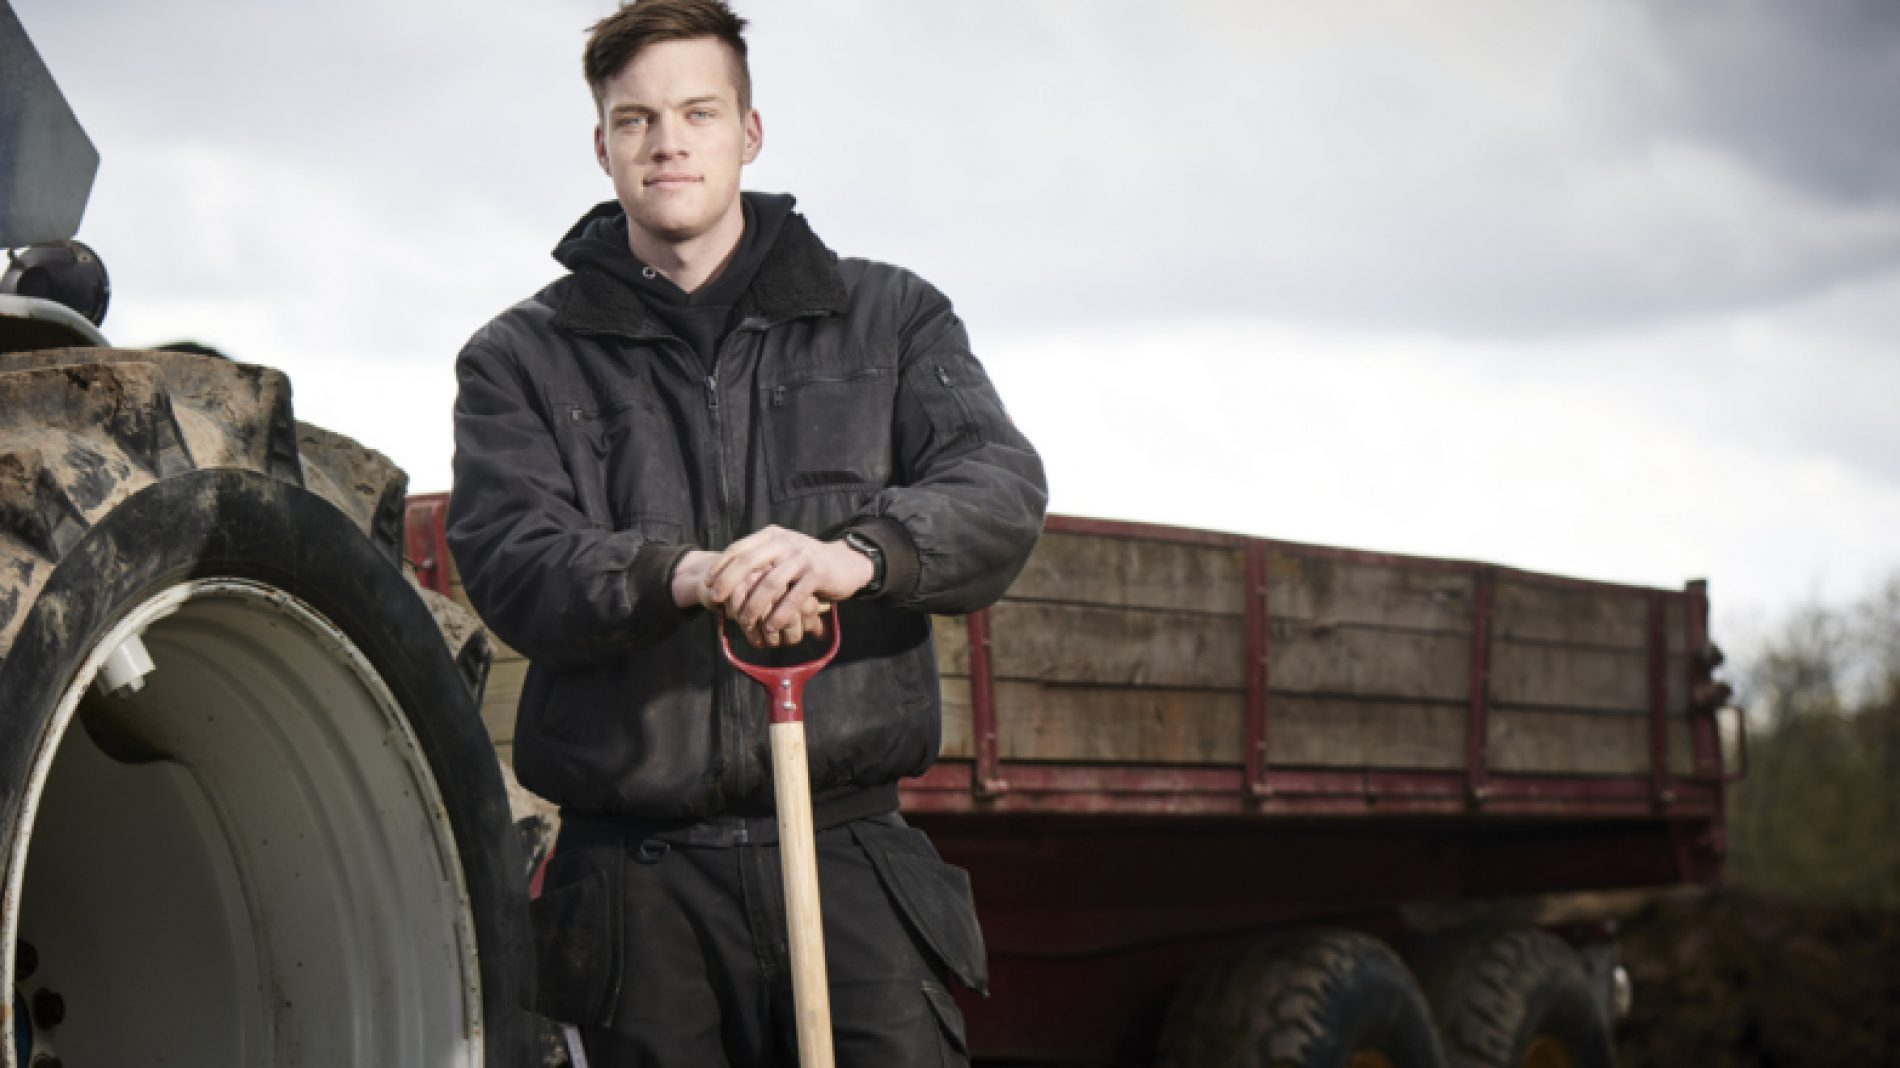 Young-farmer-standing-infront-of-a-tractor-HoEKkq